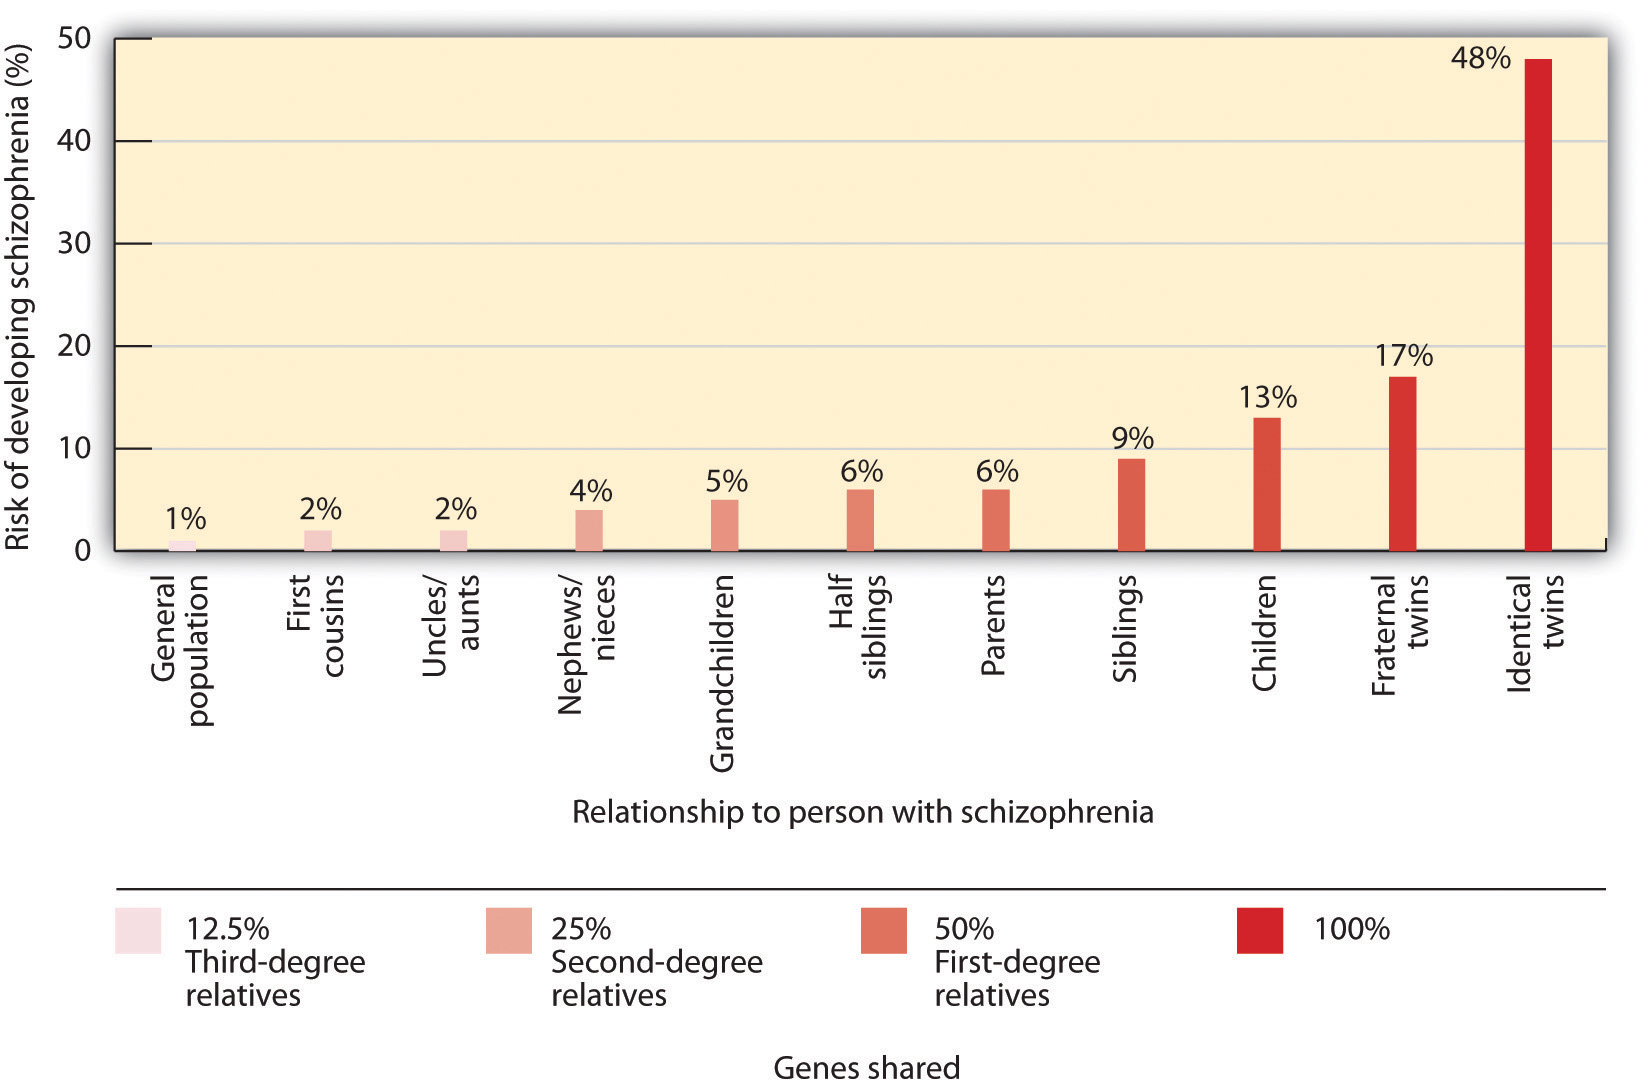 This chart contrasts risk of developing schizophrenia (%) by relationship to person with schizophrenia to identify genetic disposition to develop schizophrenia. Long description available.